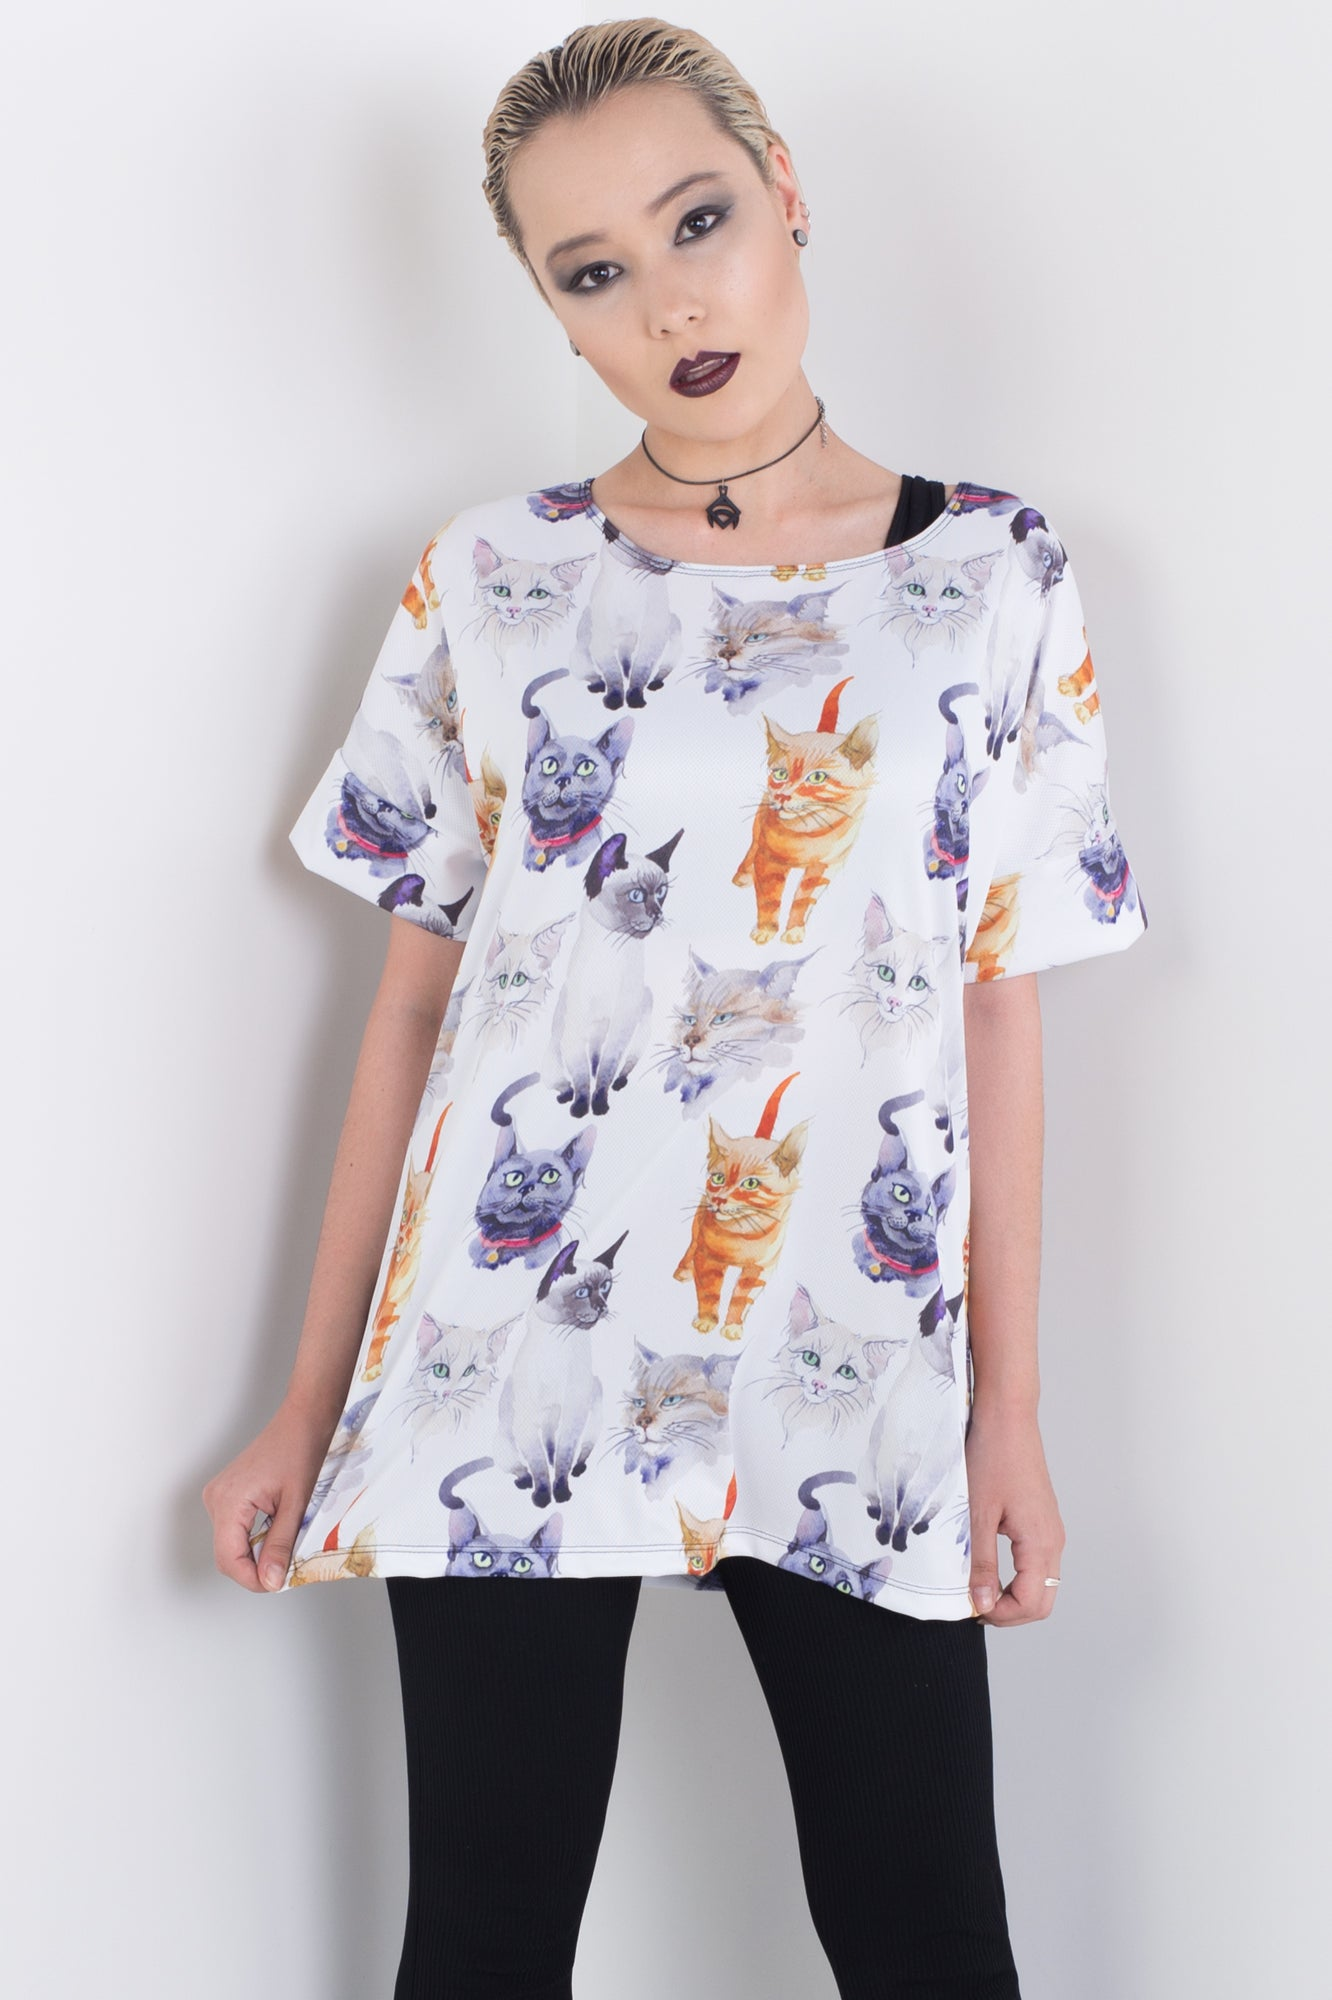 Soft Kitty Triple Threat Tee